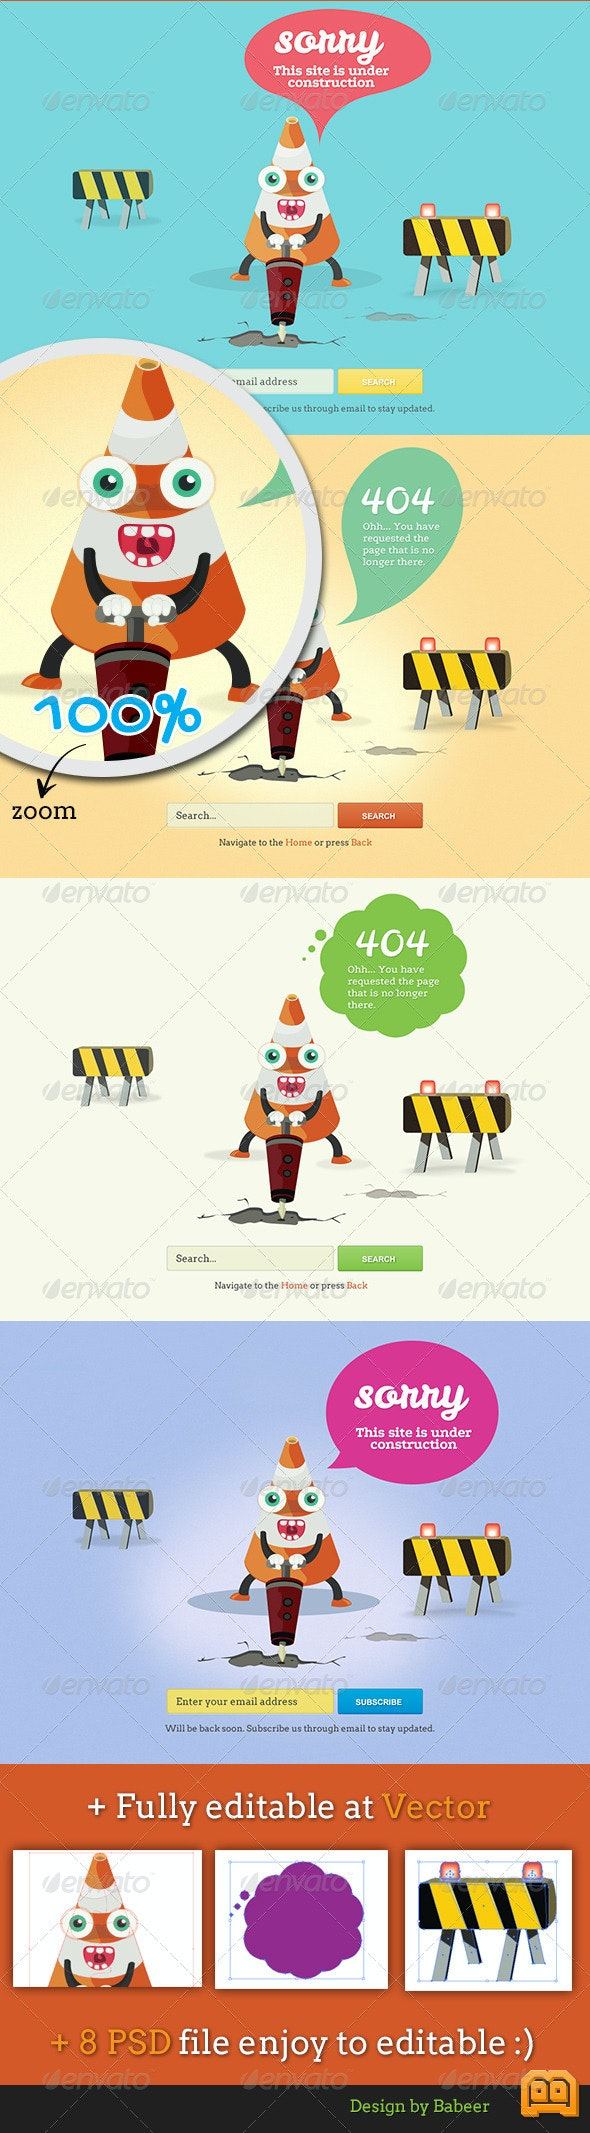 Cone Error 404 Page and Under Construction Page - 404 Pages Web Elements